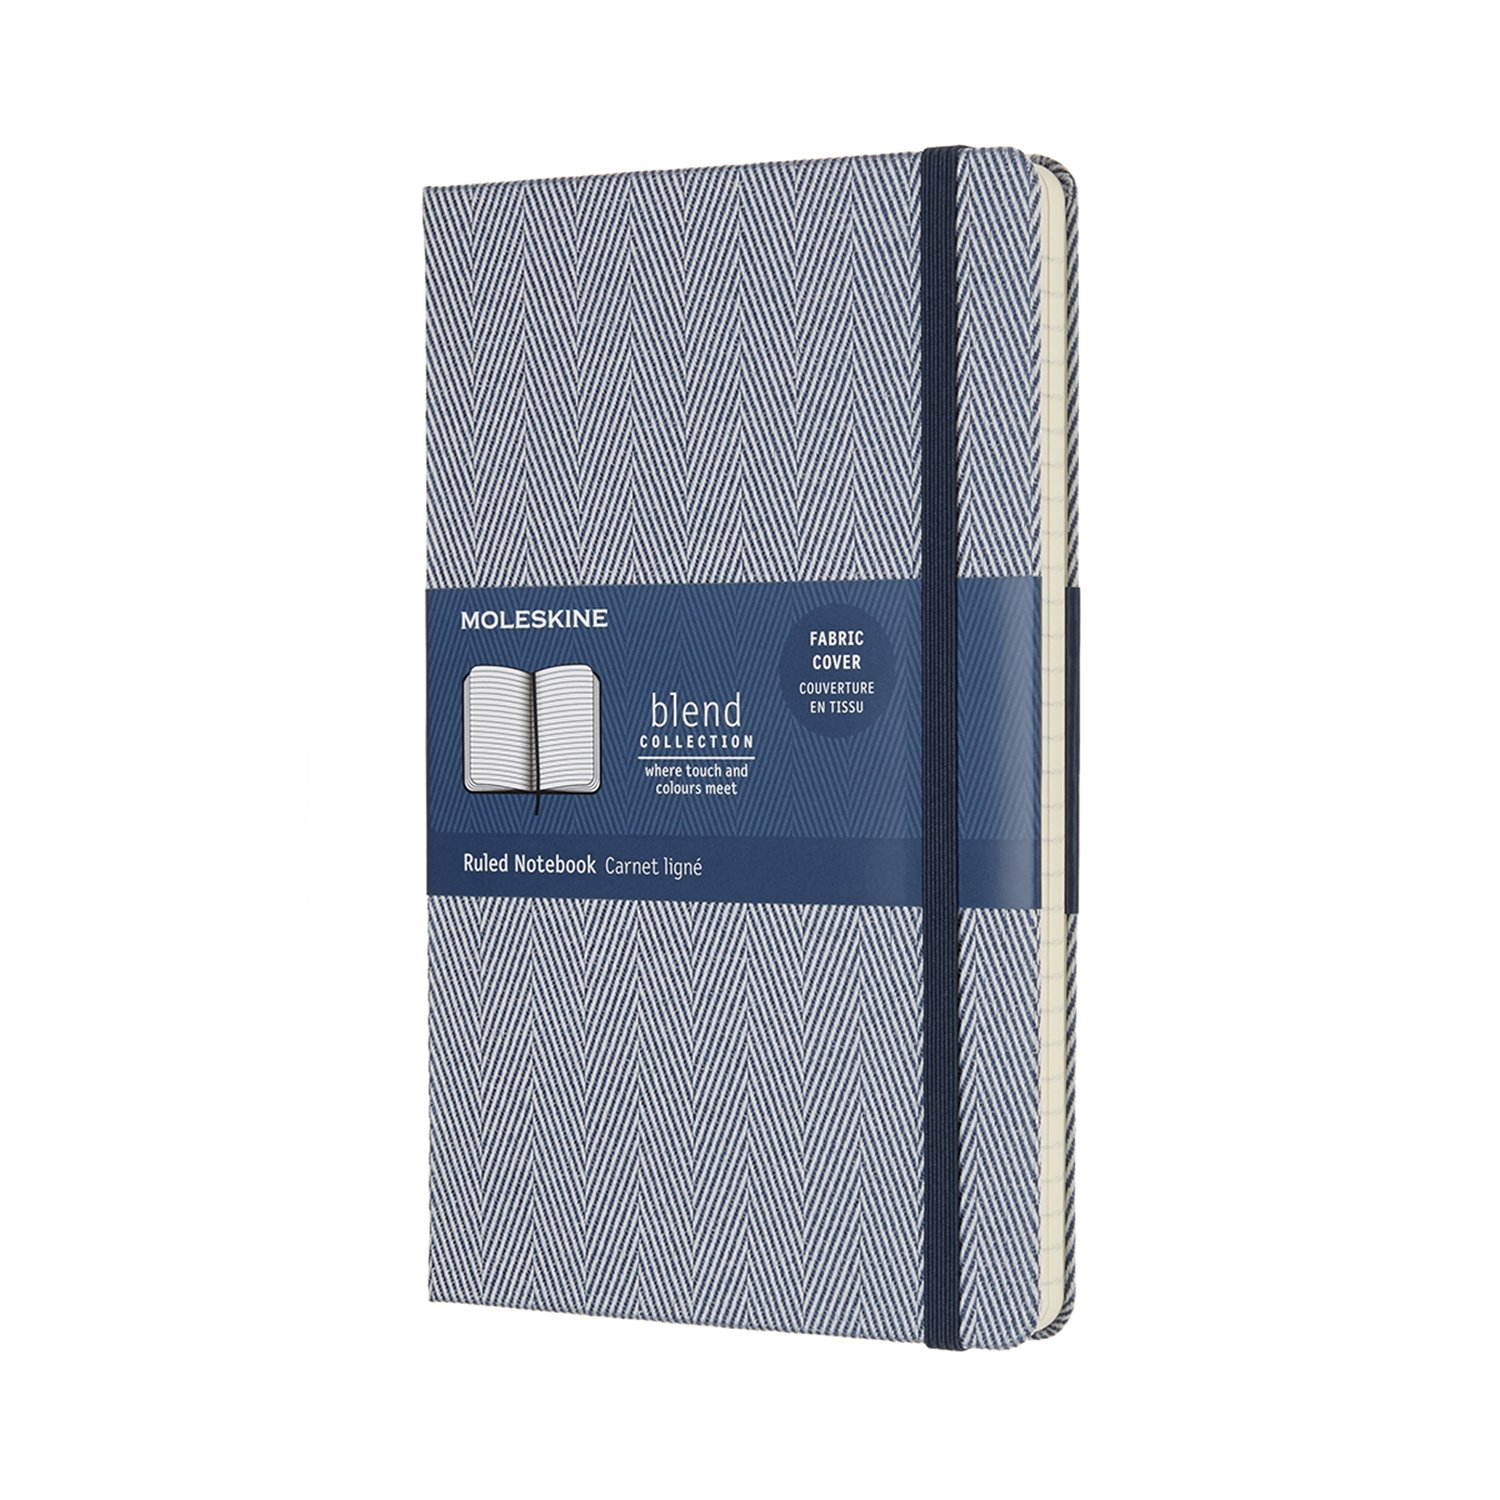 Moleskine Le Blend Collection Notebook Large Ruled 8055002855983 Accessory Cinéma Consumer Accessories